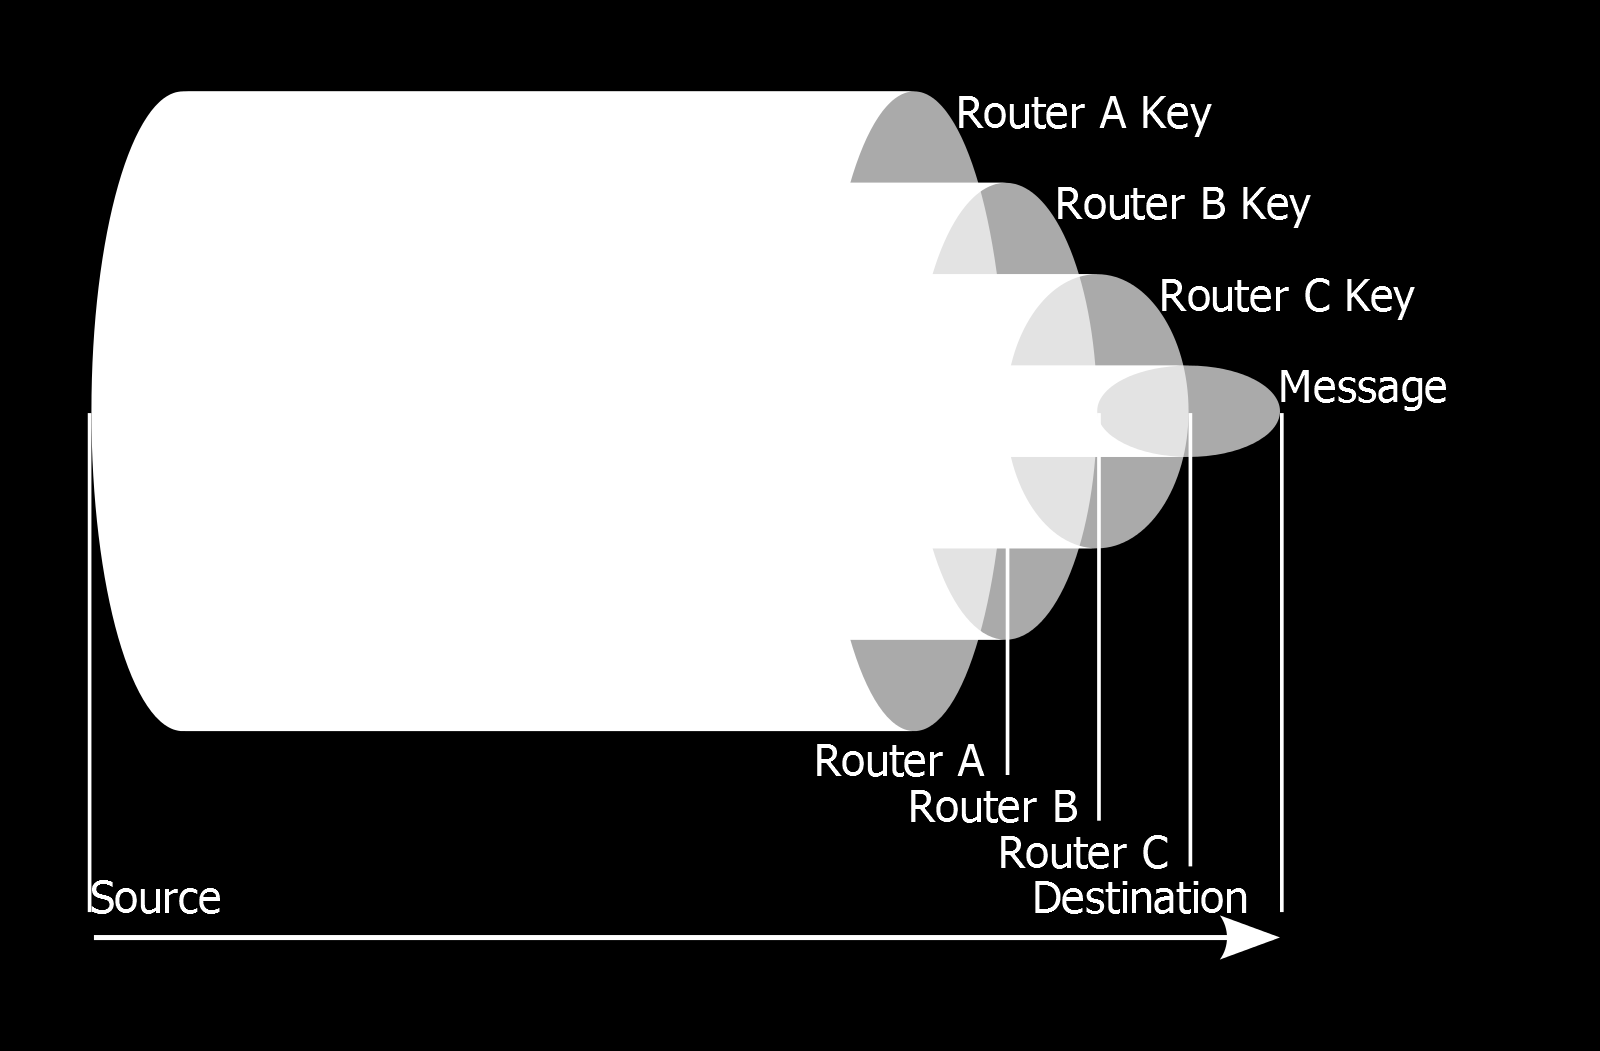 14 Anonymous Communication Systems cryptographically layered data structure that defines the route through the onion routing network [6]. Figure 1.2 shows these encryption layers.